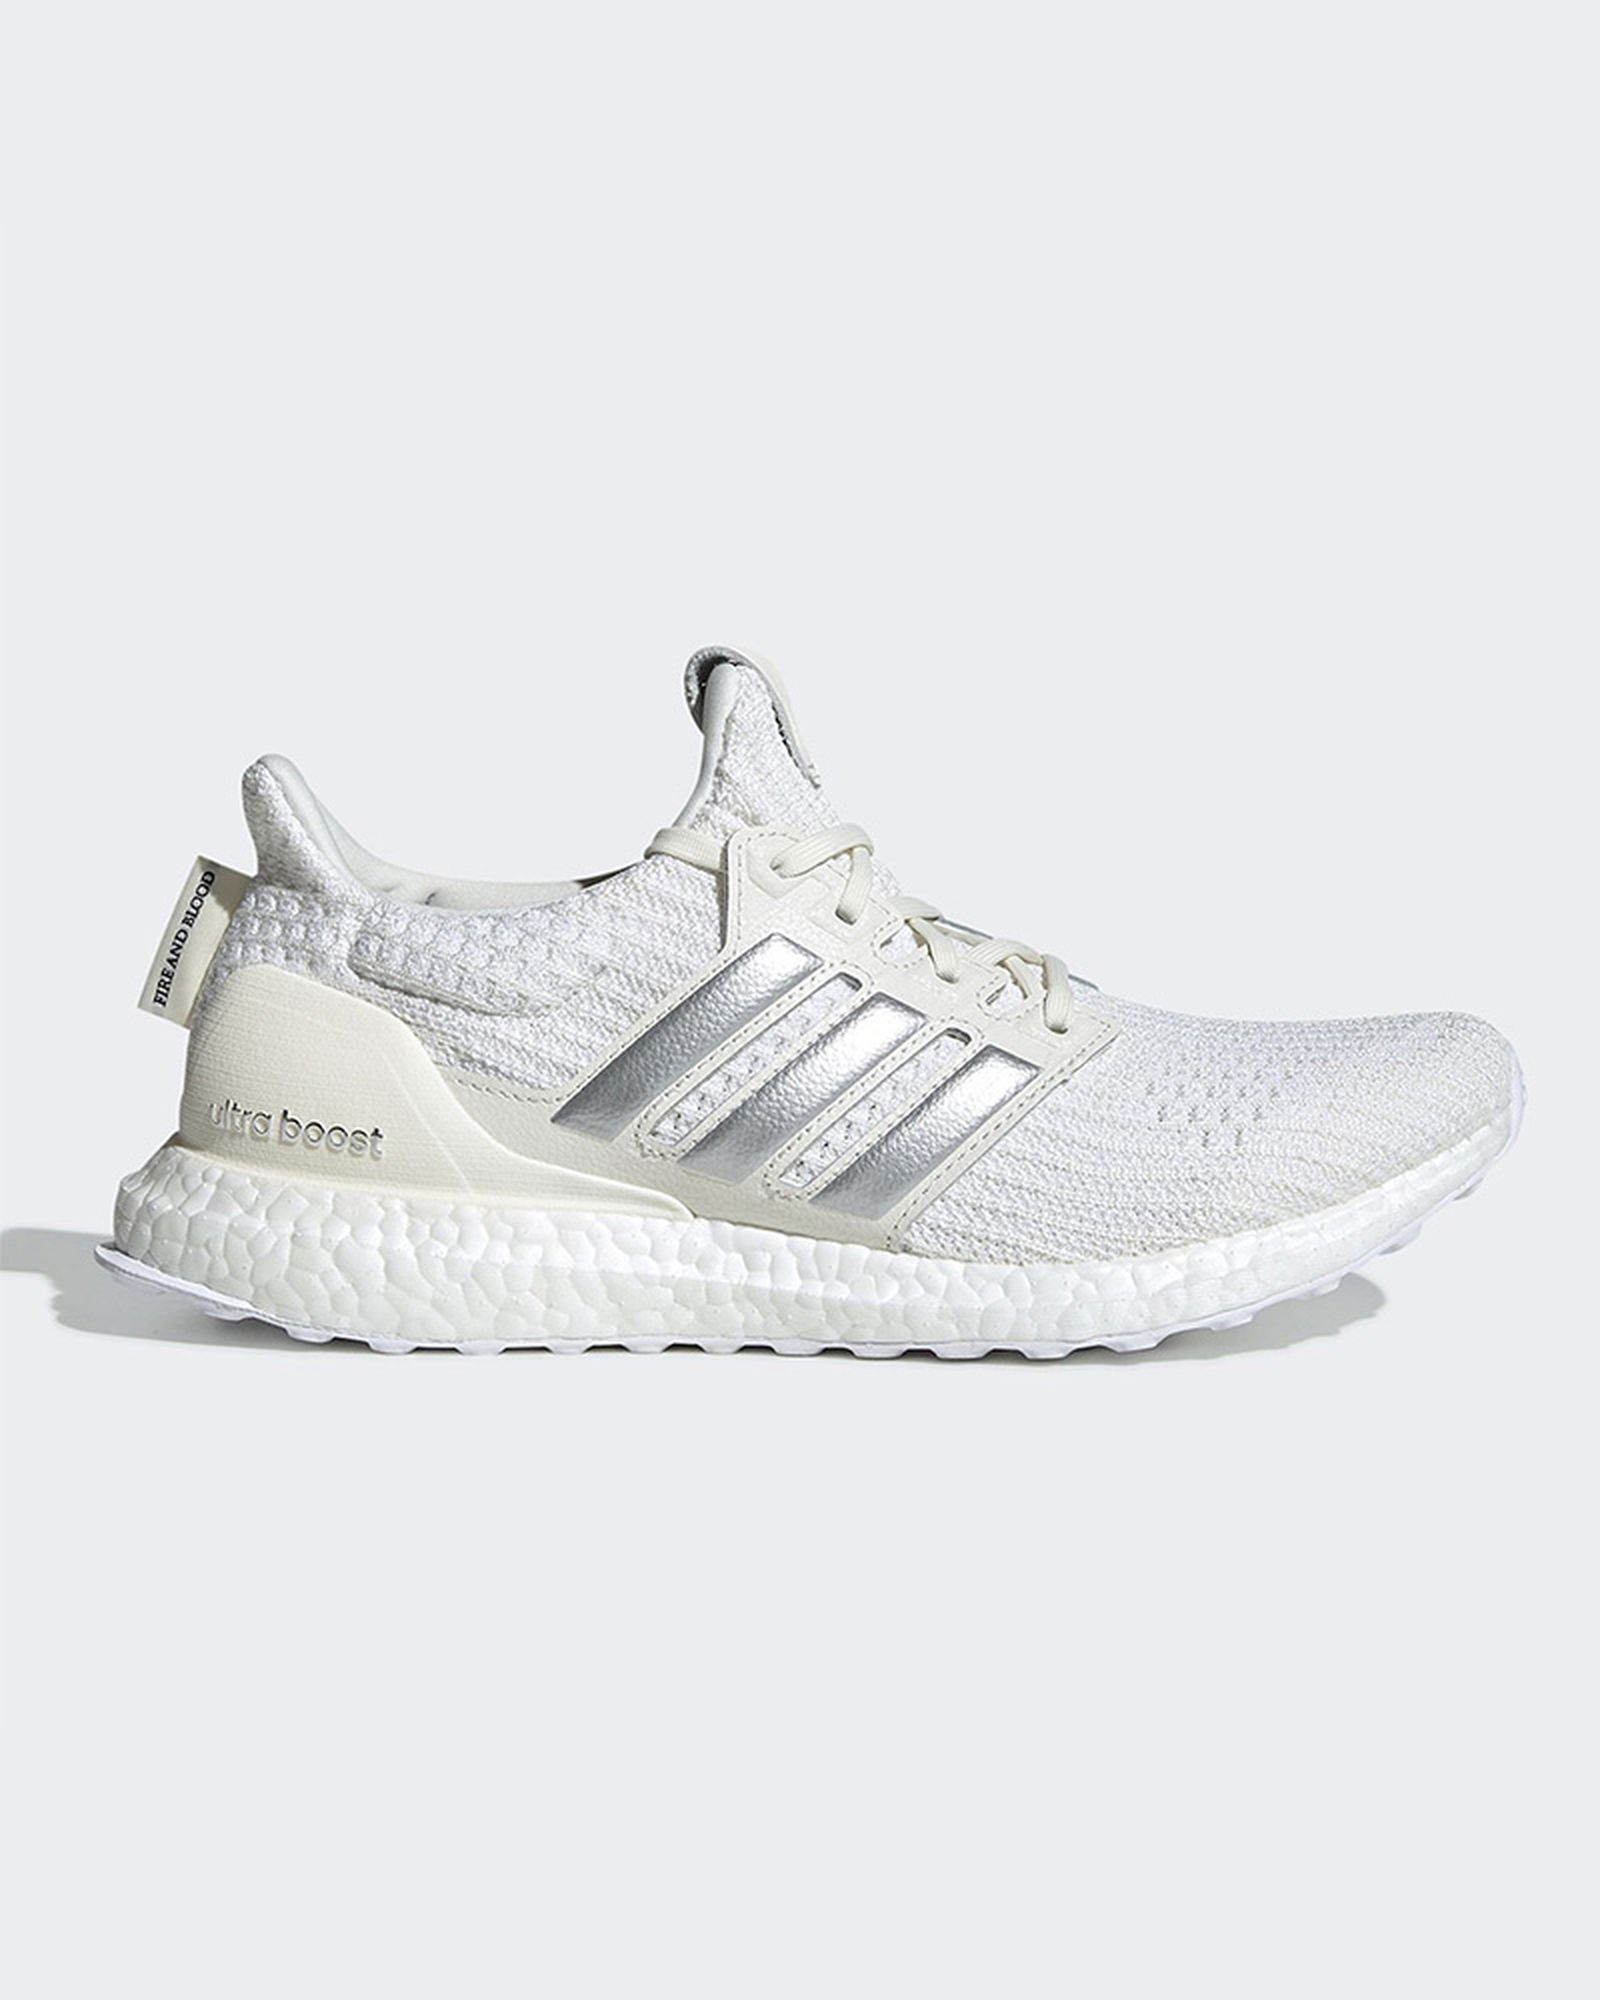 game-of-thrones-adidas-ultra-boost-colorways-09